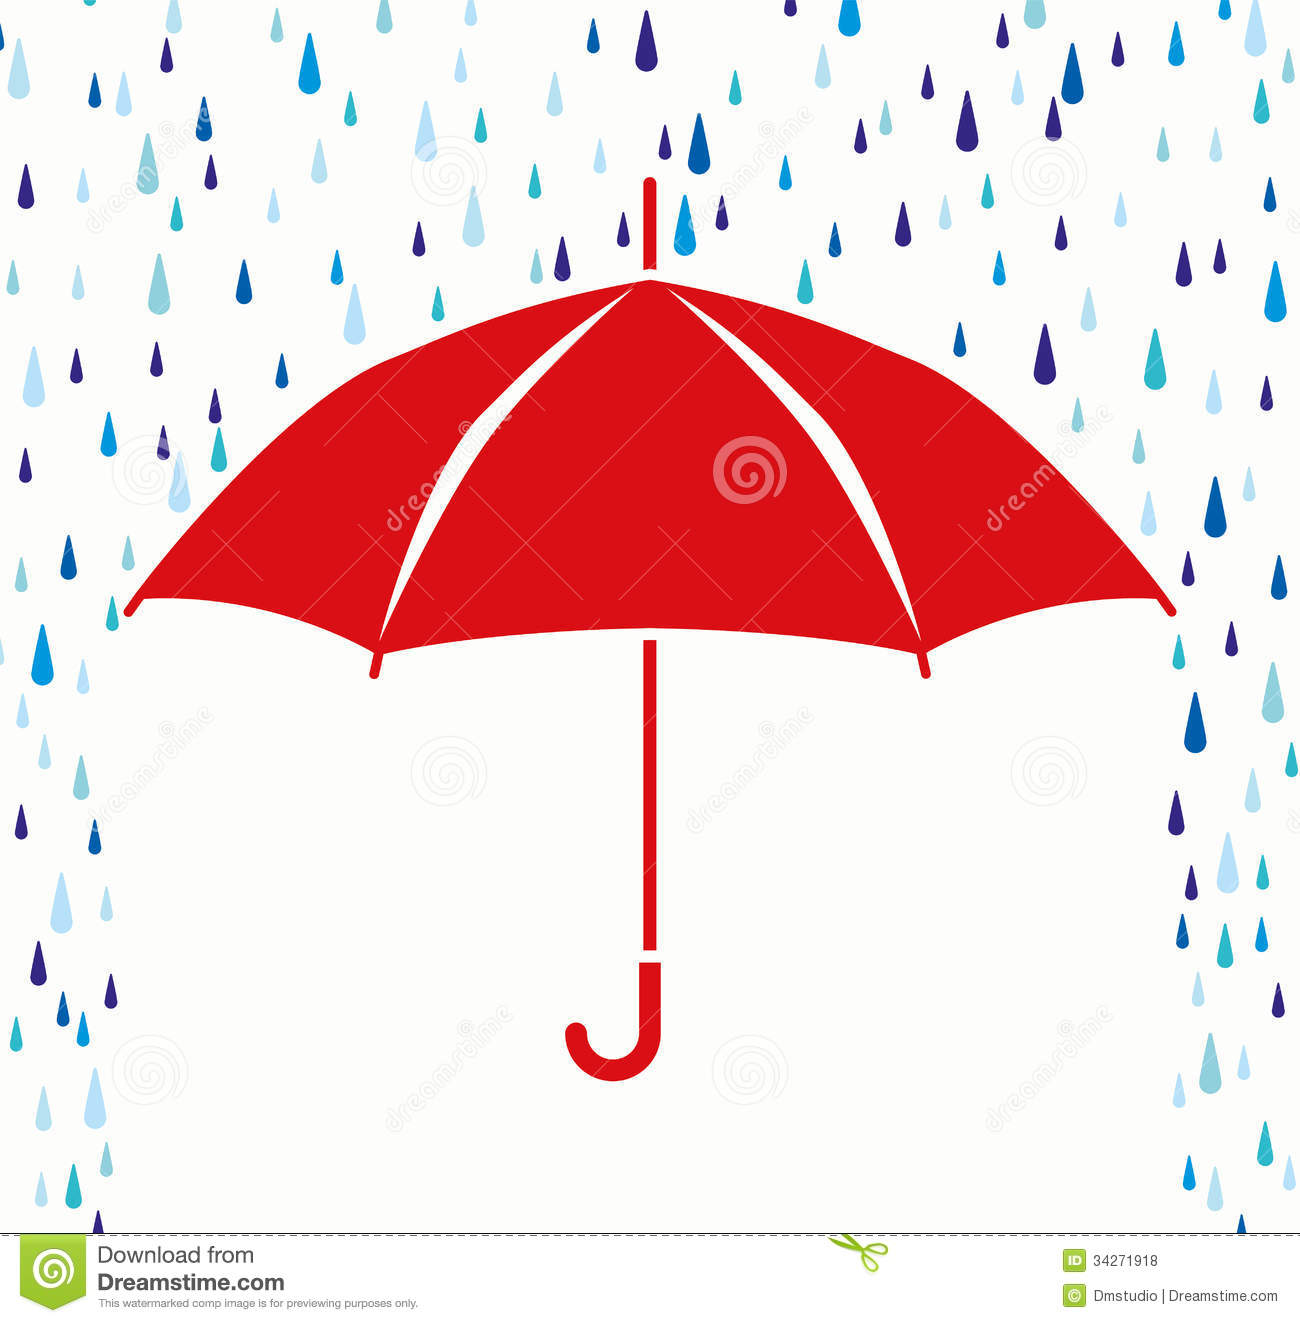 Umbrella and rain clipart graphic royalty free Umbrella with rain clipart 5 » Clipart Station graphic royalty free